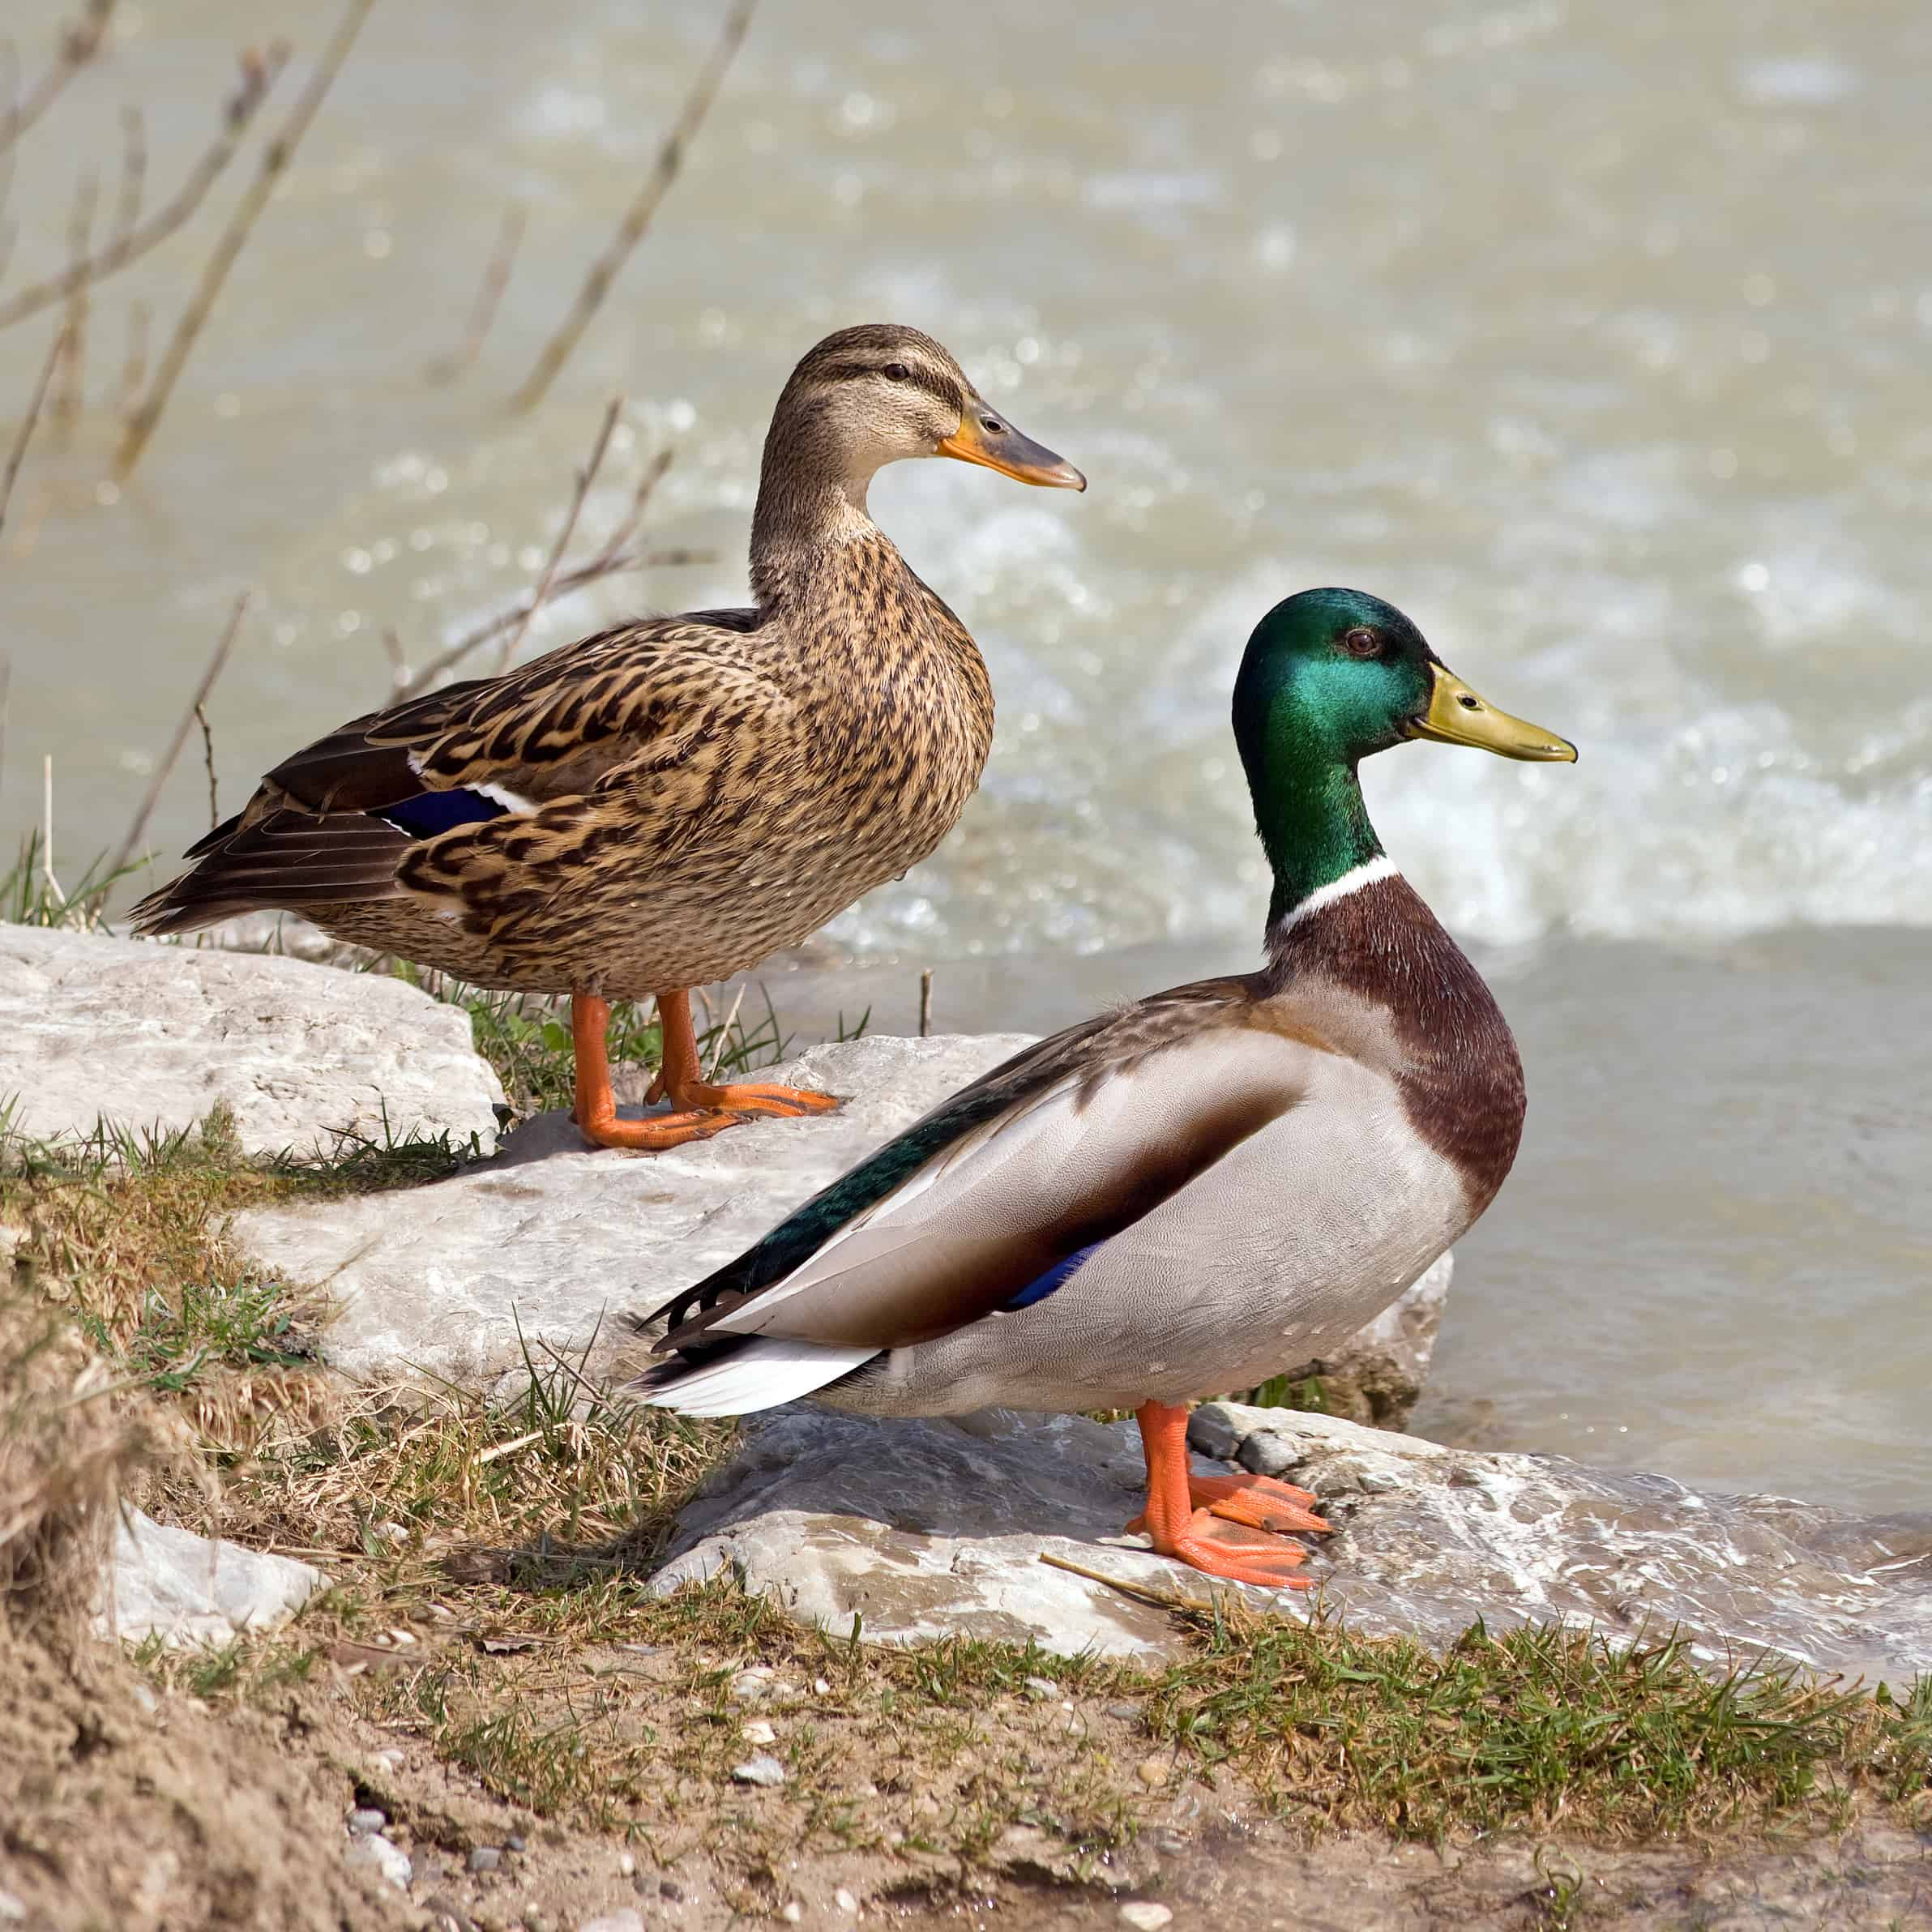 How many types of Ducks are there?